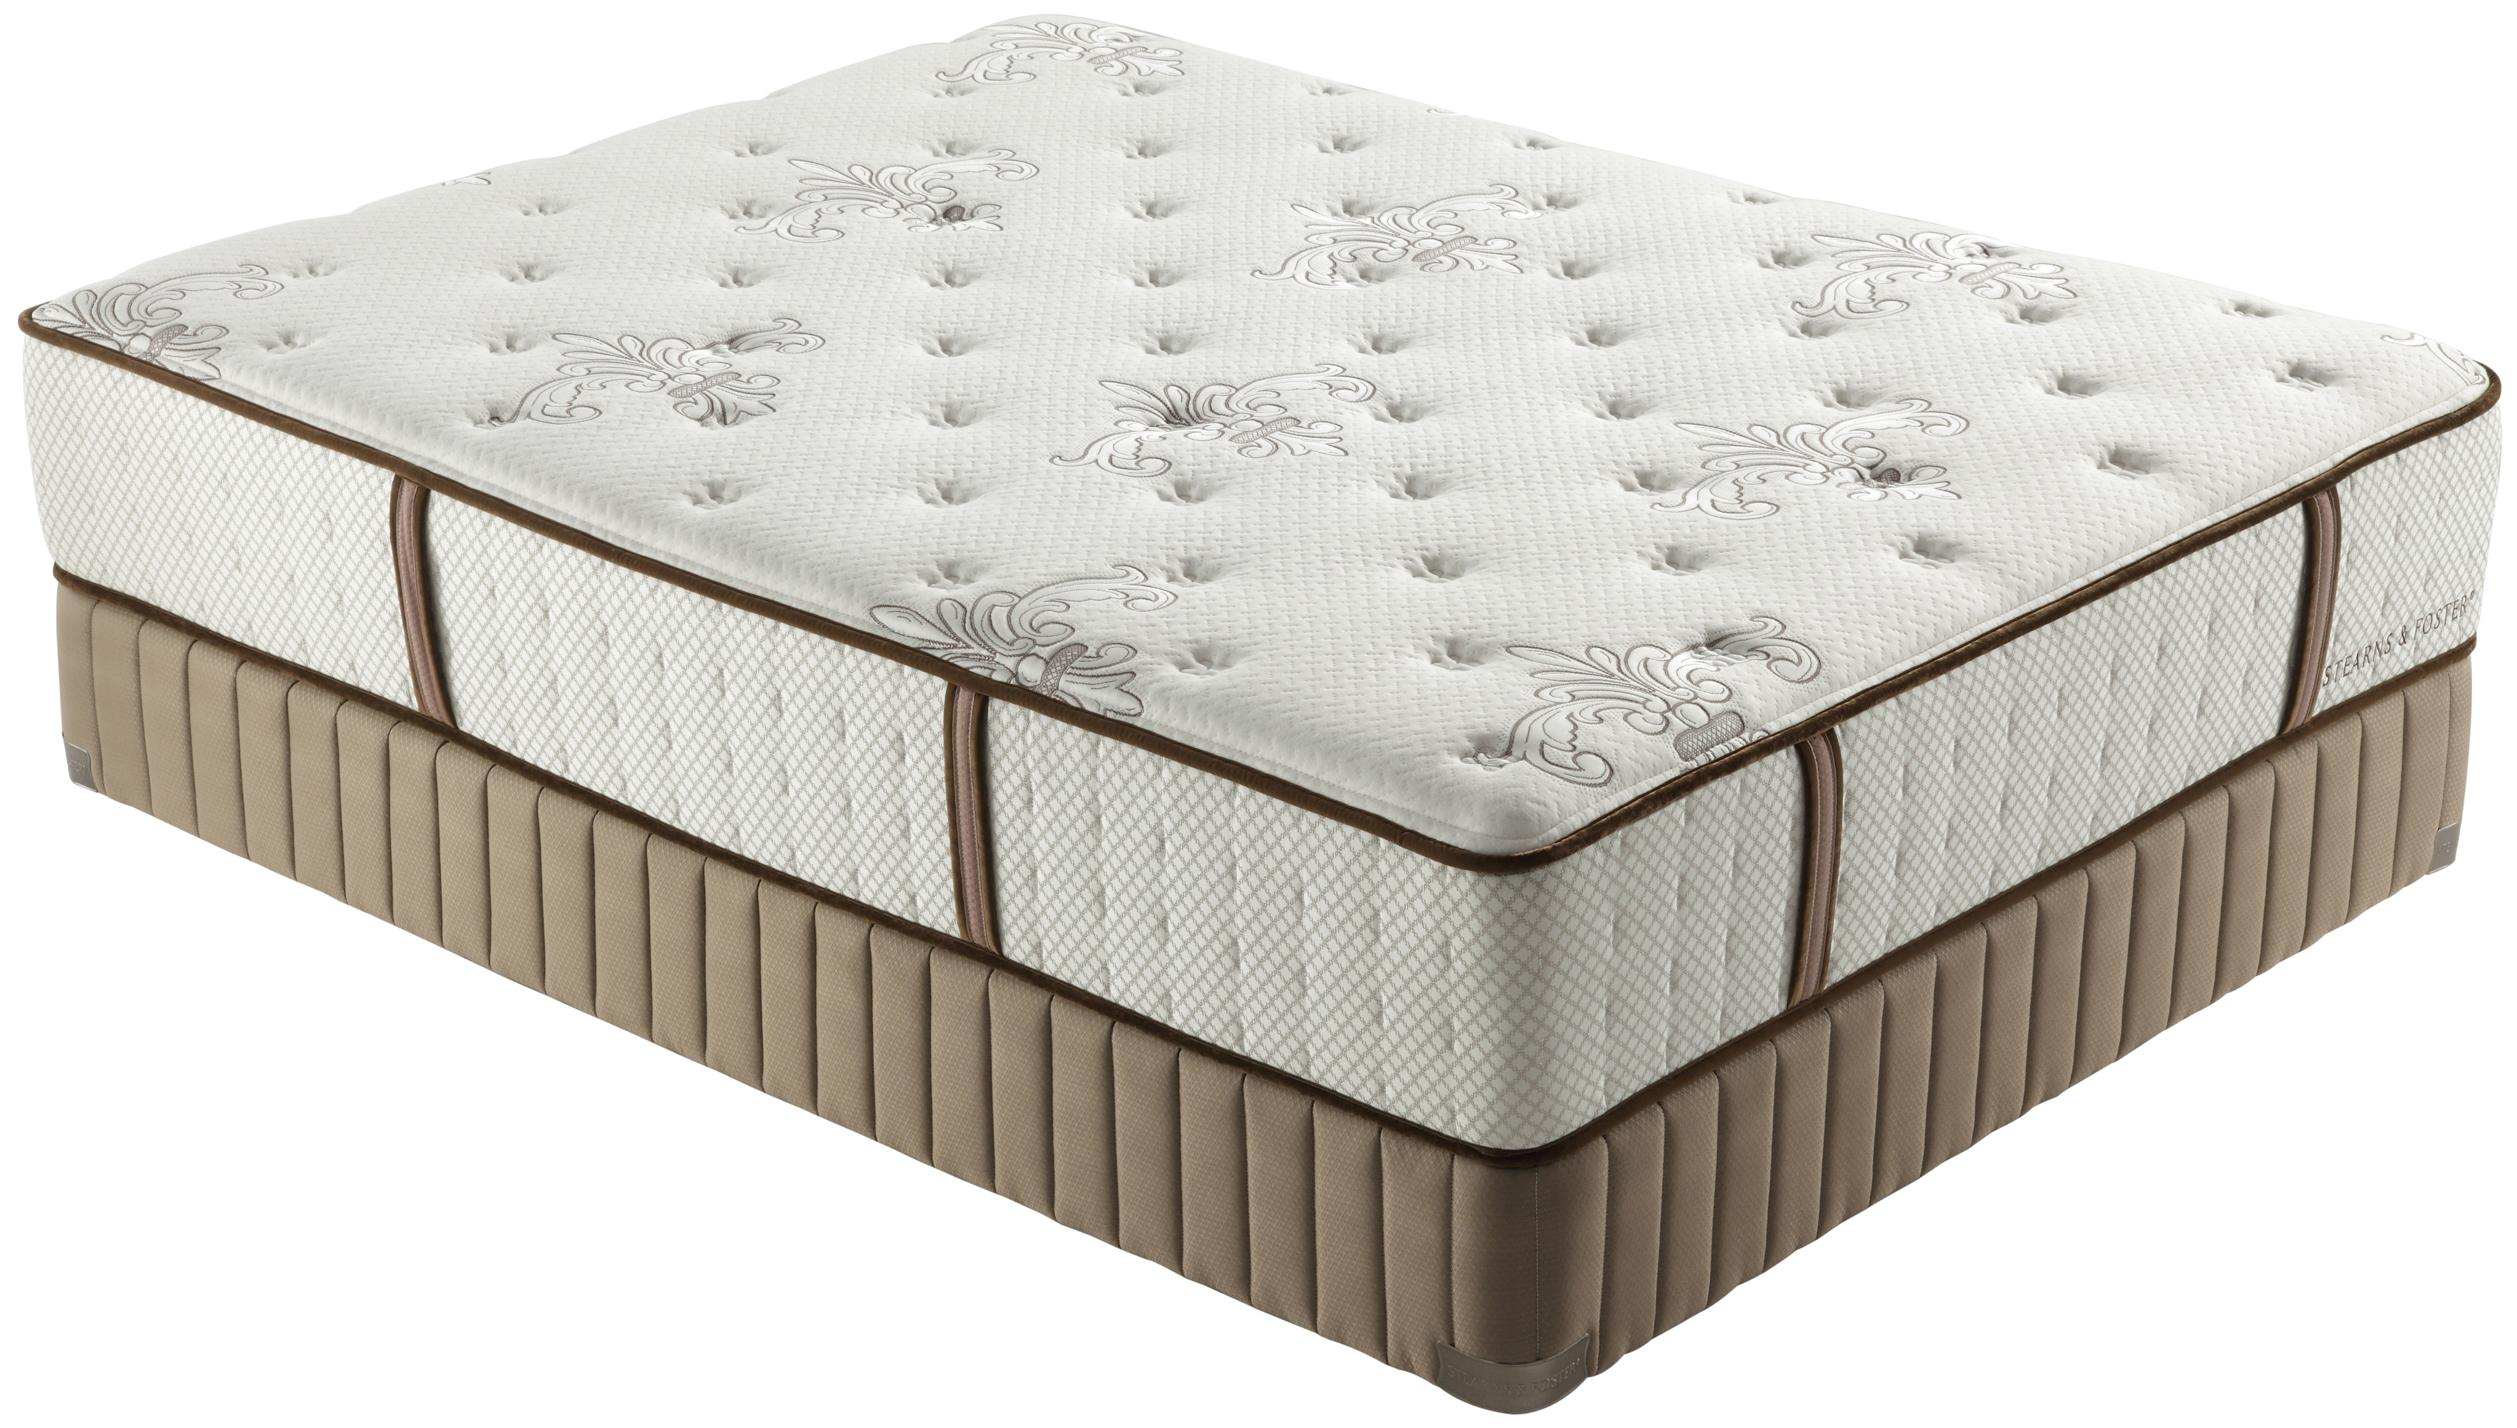 city furniture and mattress case analysis The majority owner and general manager of city furniture and mattress (cfm), needed to make several decisions that would determine the company's strategy.